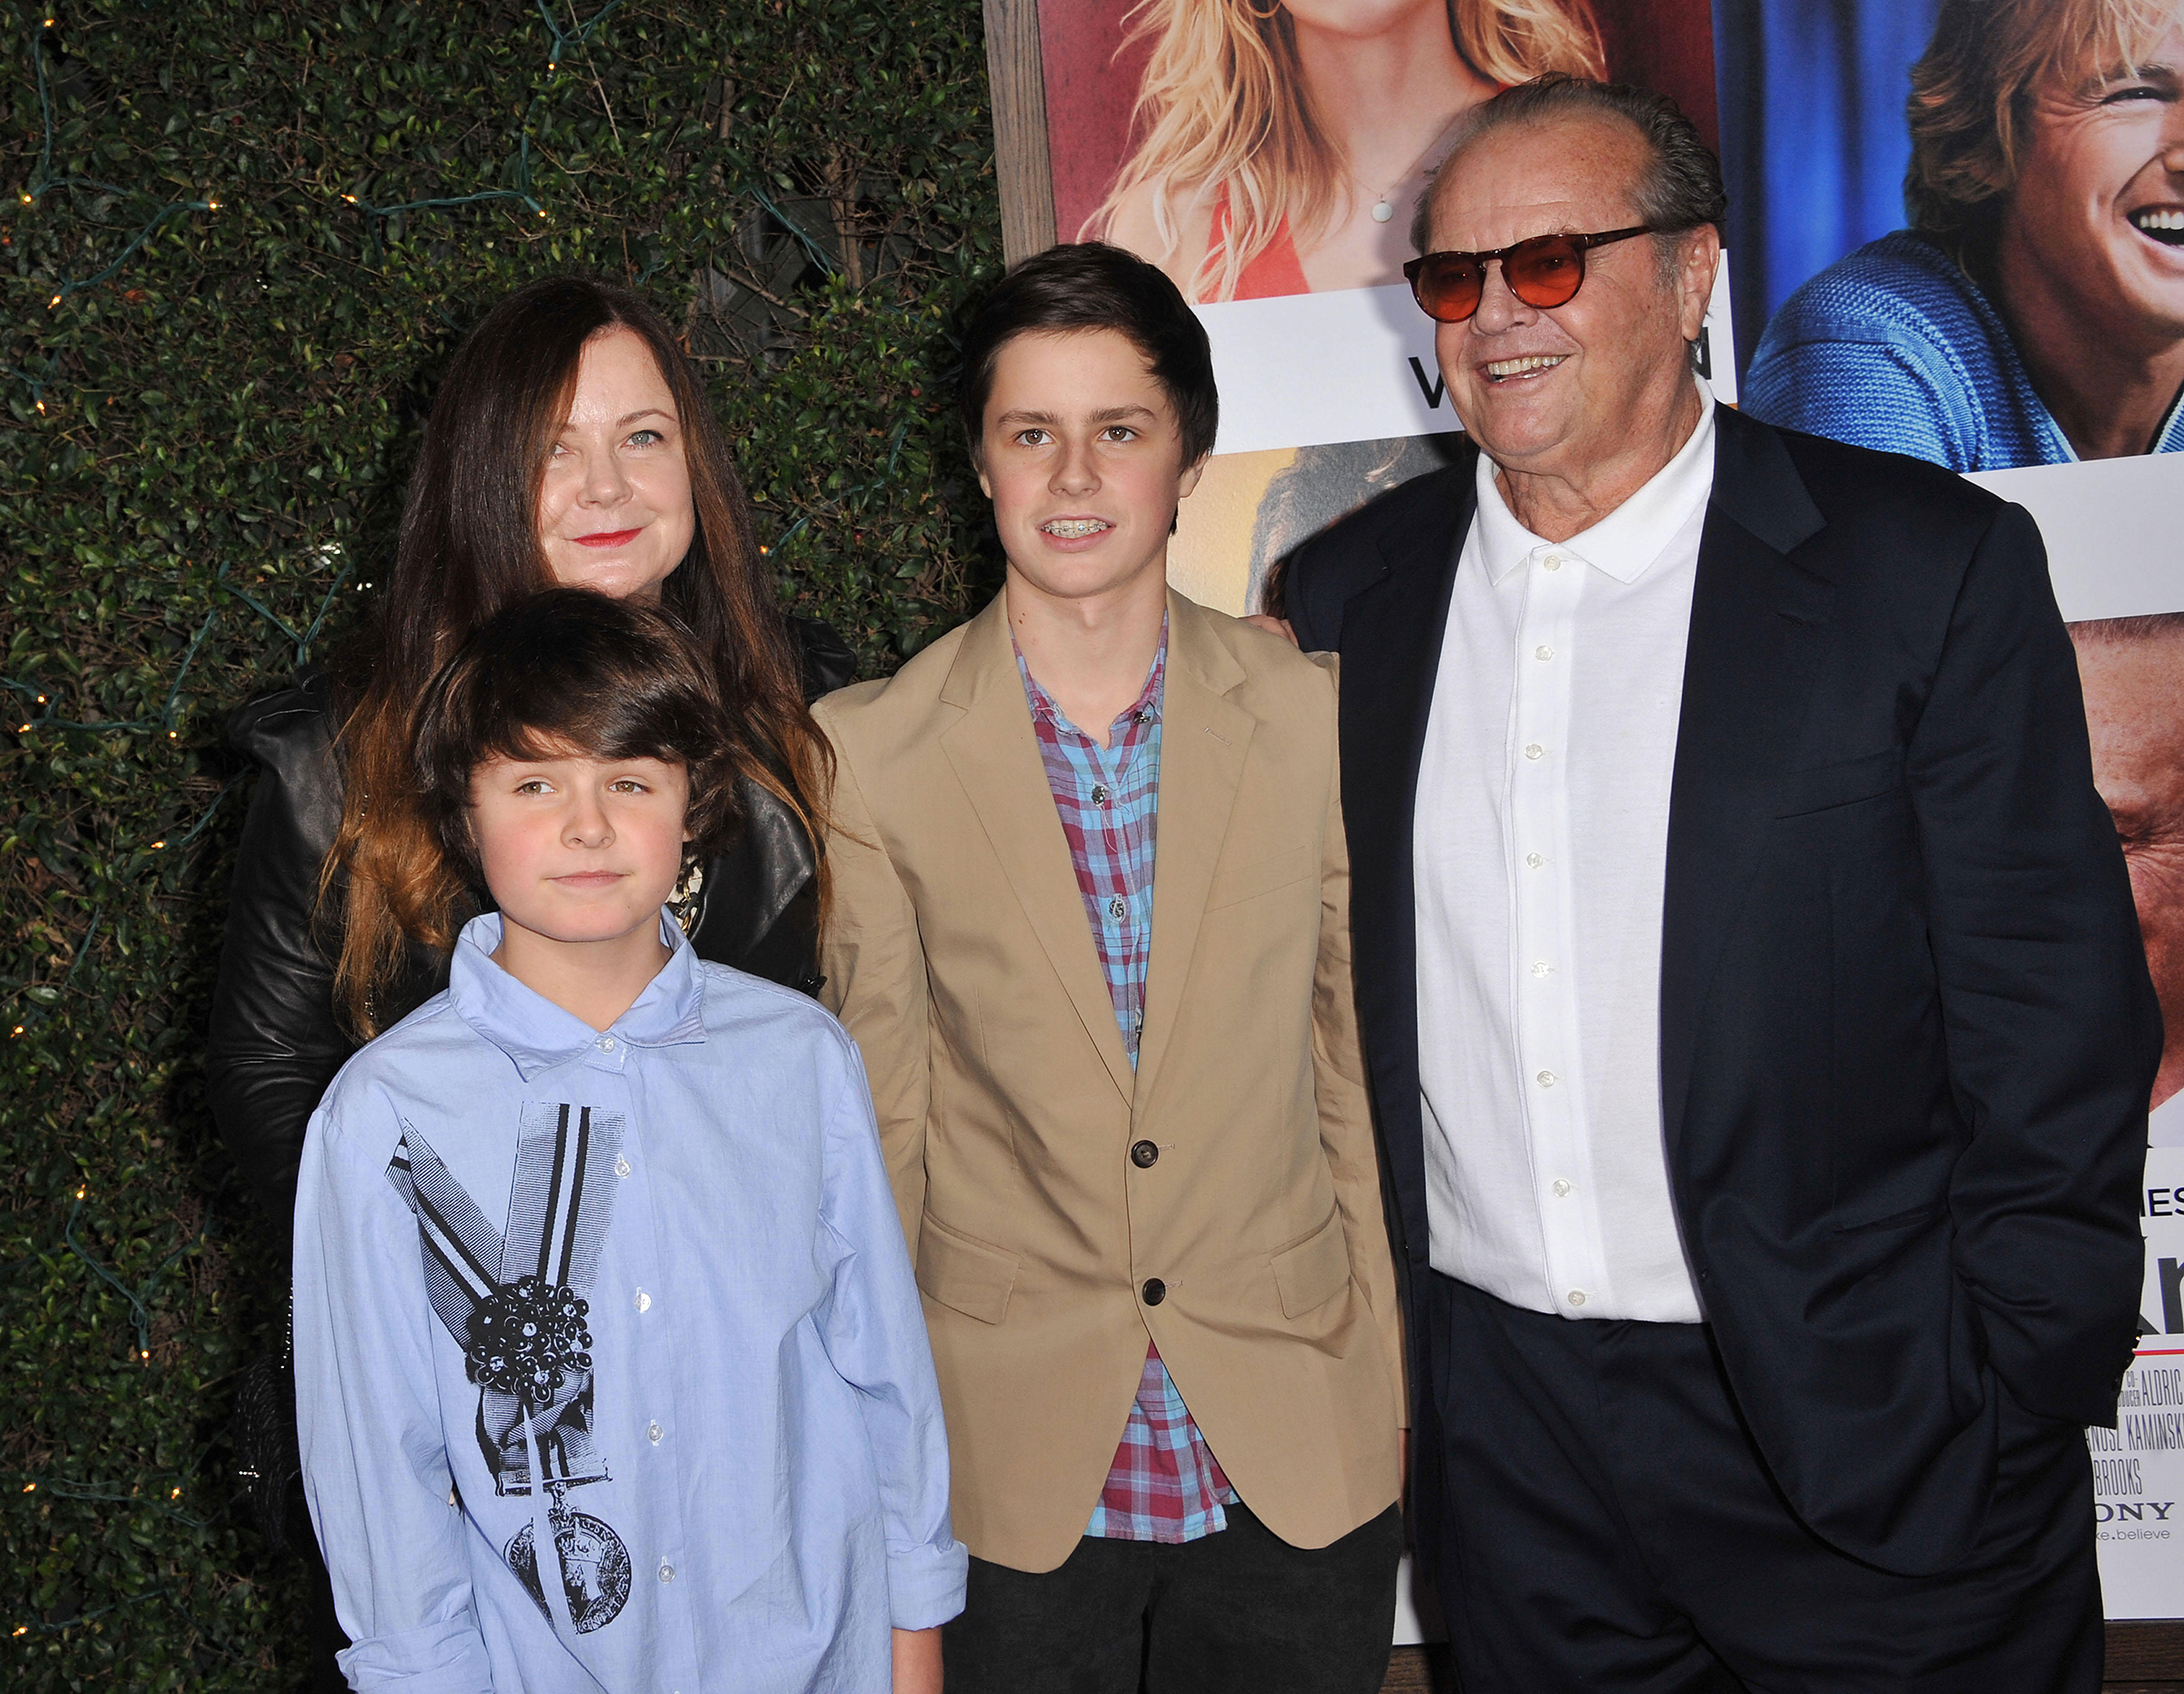 Jack Nicholson S Look Alike Grandson Gives First Interview For everybody, everywhere, everydevice, and everything https www today com popculture jack nicholson s look alike grandson gives first interview t170195